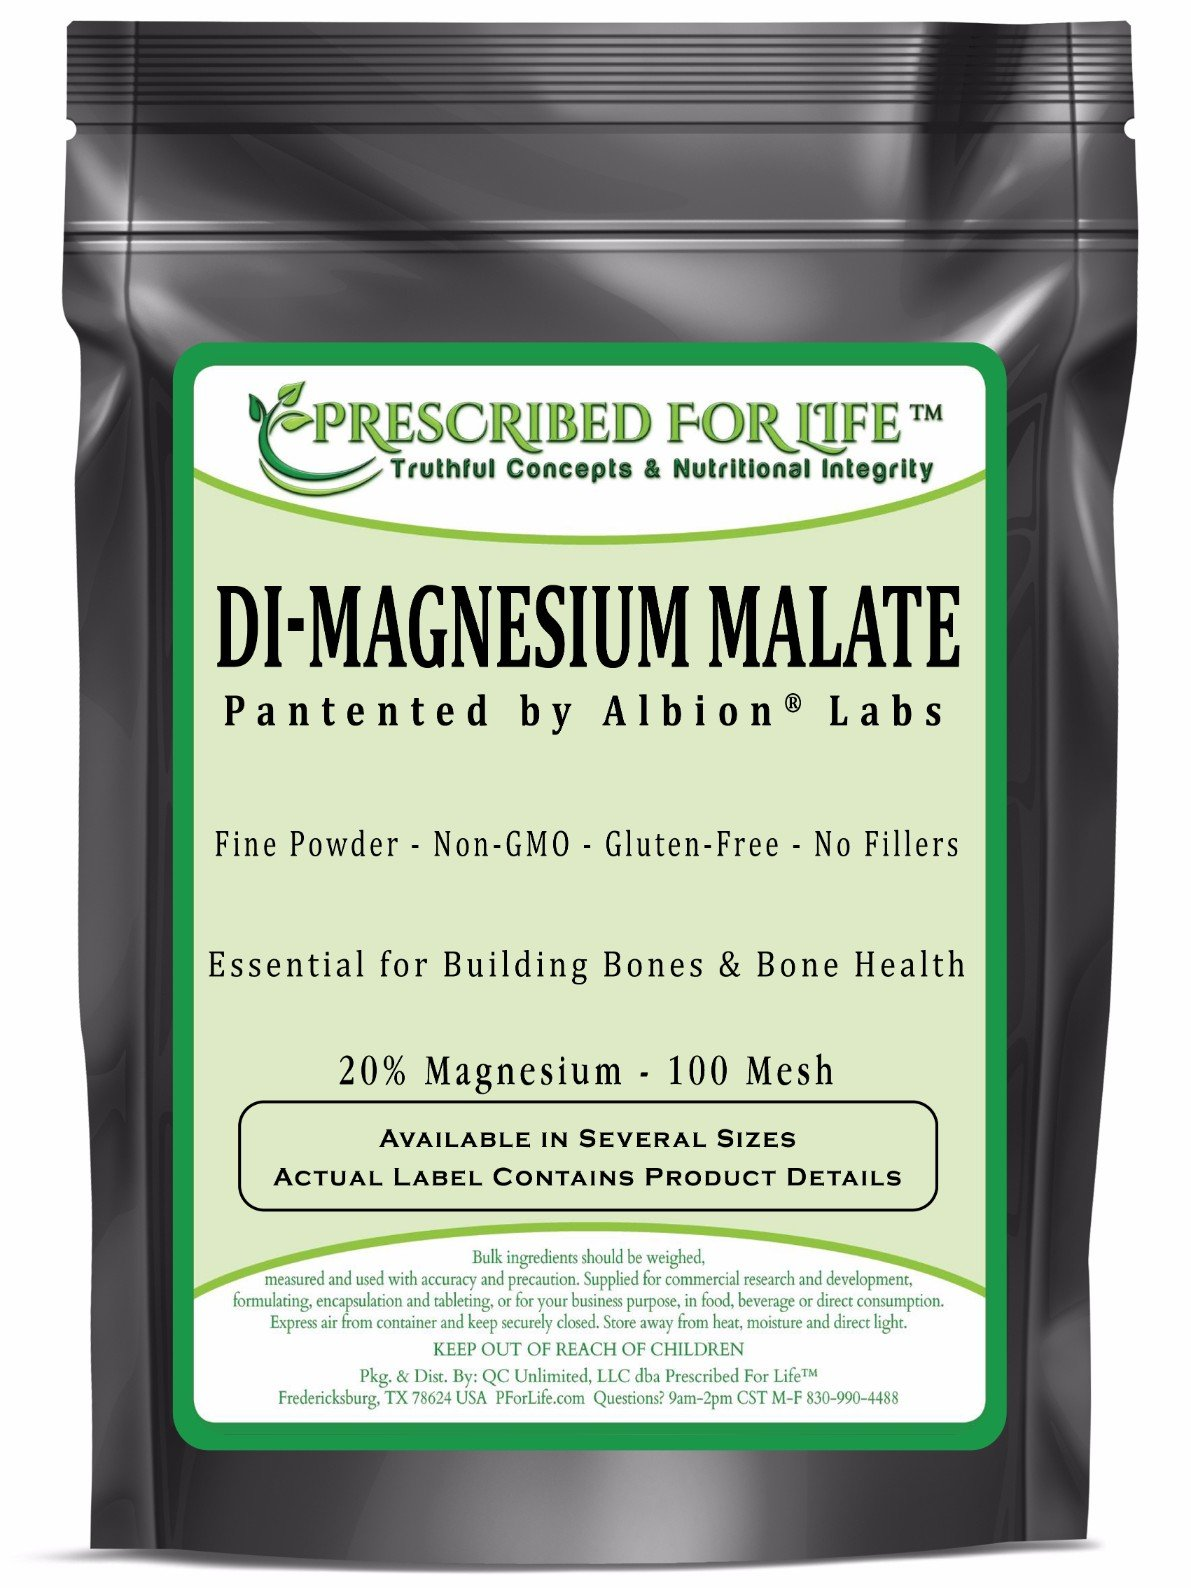 Magnesium - DiMagnesium Malate Powder - 20% Mg by Albion, 5 kg